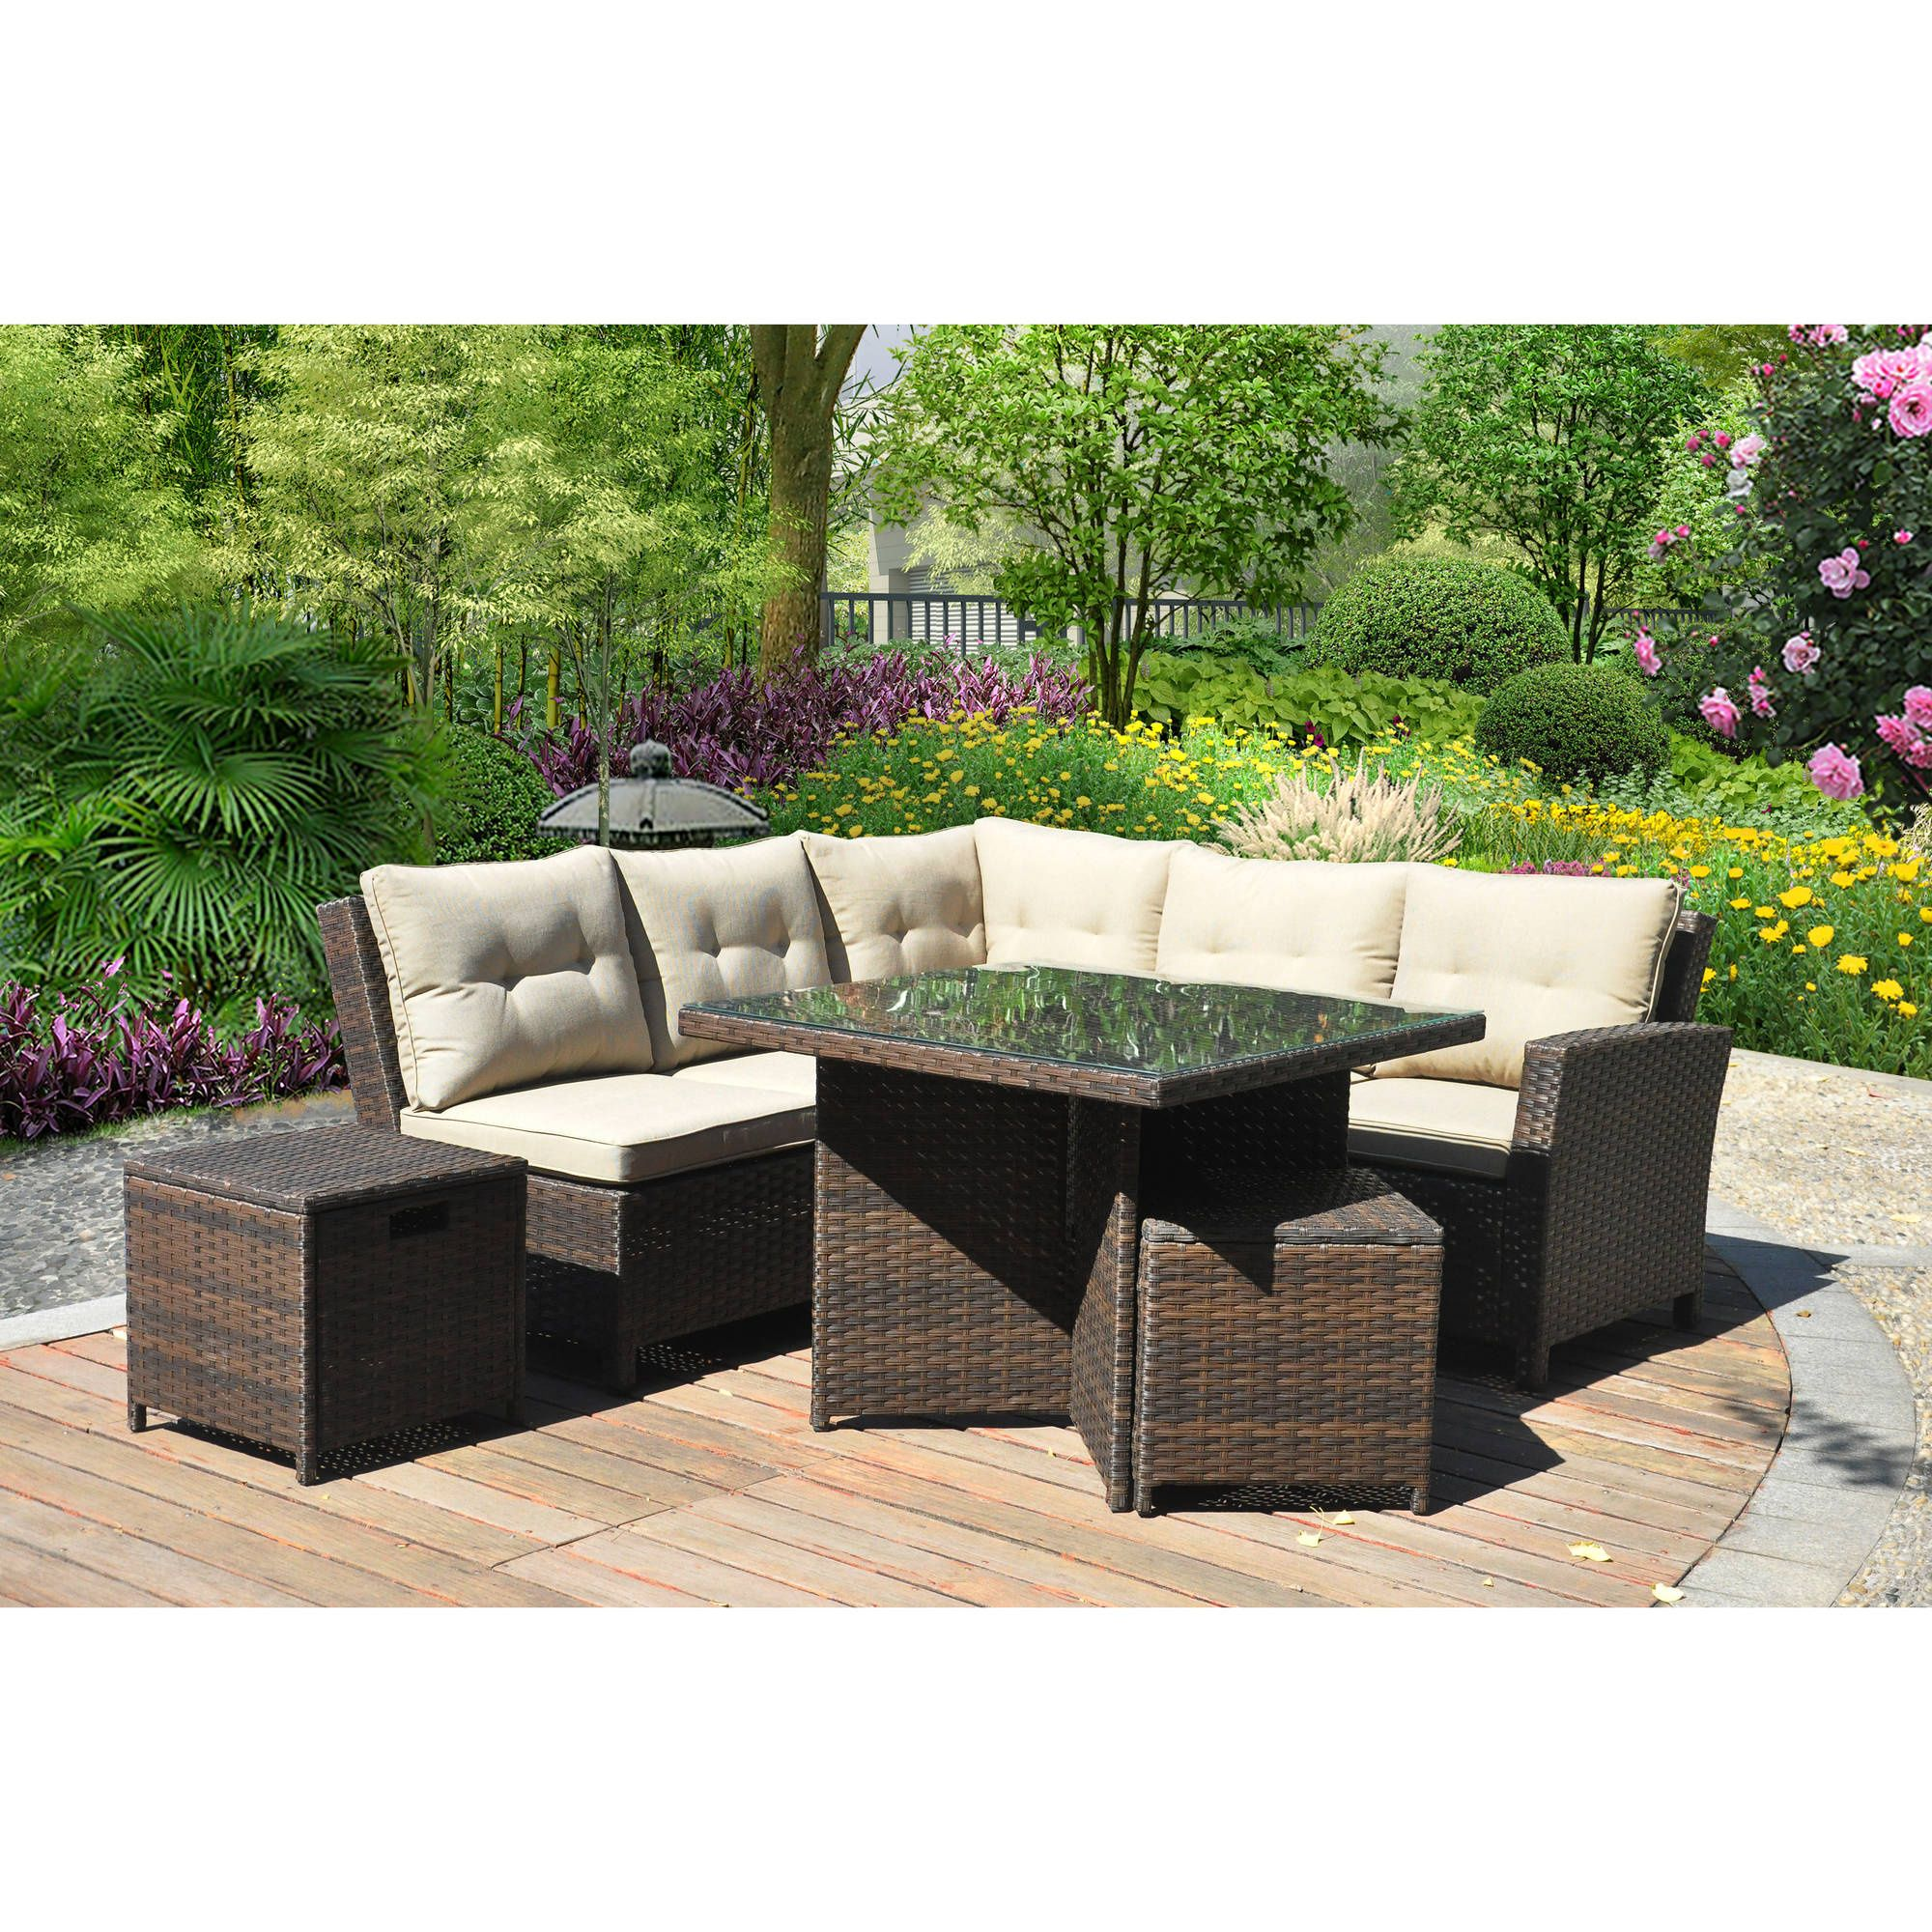 Better Homes Outdoor Furniture Best Way to Paint Furniture Check